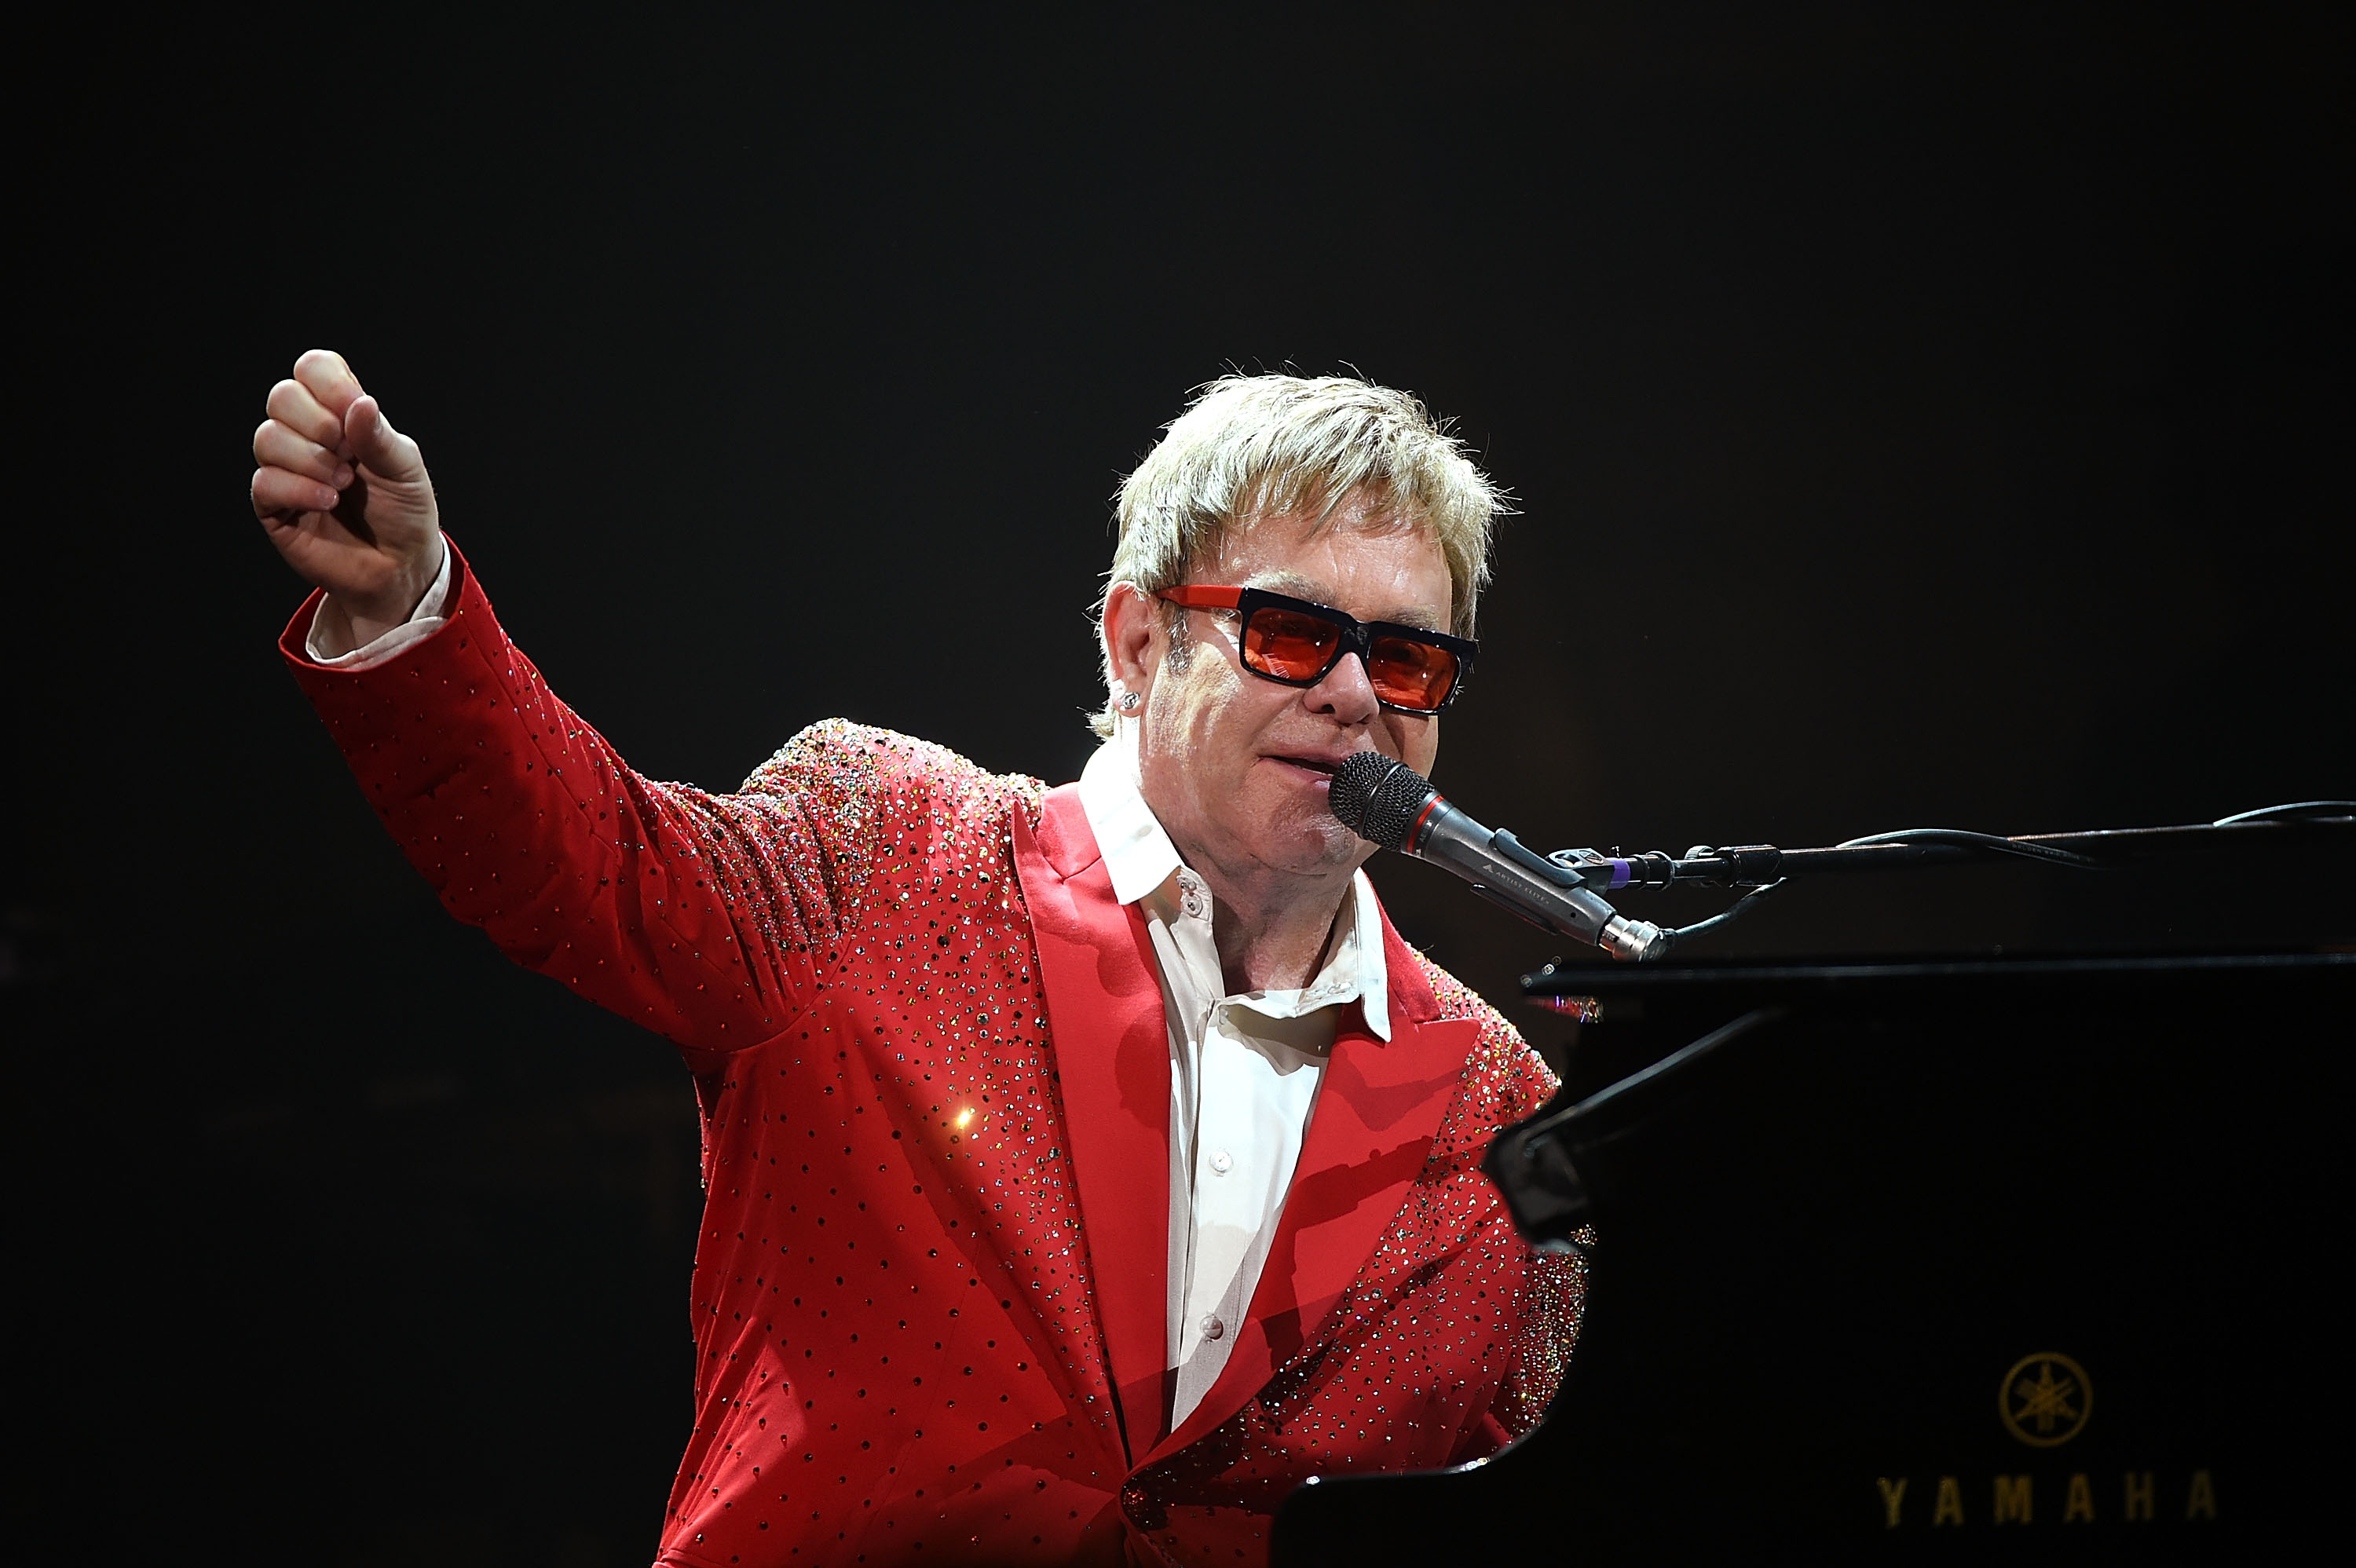 Colts Owner Drops $915,000 On Elton's Prized Touring Piano!